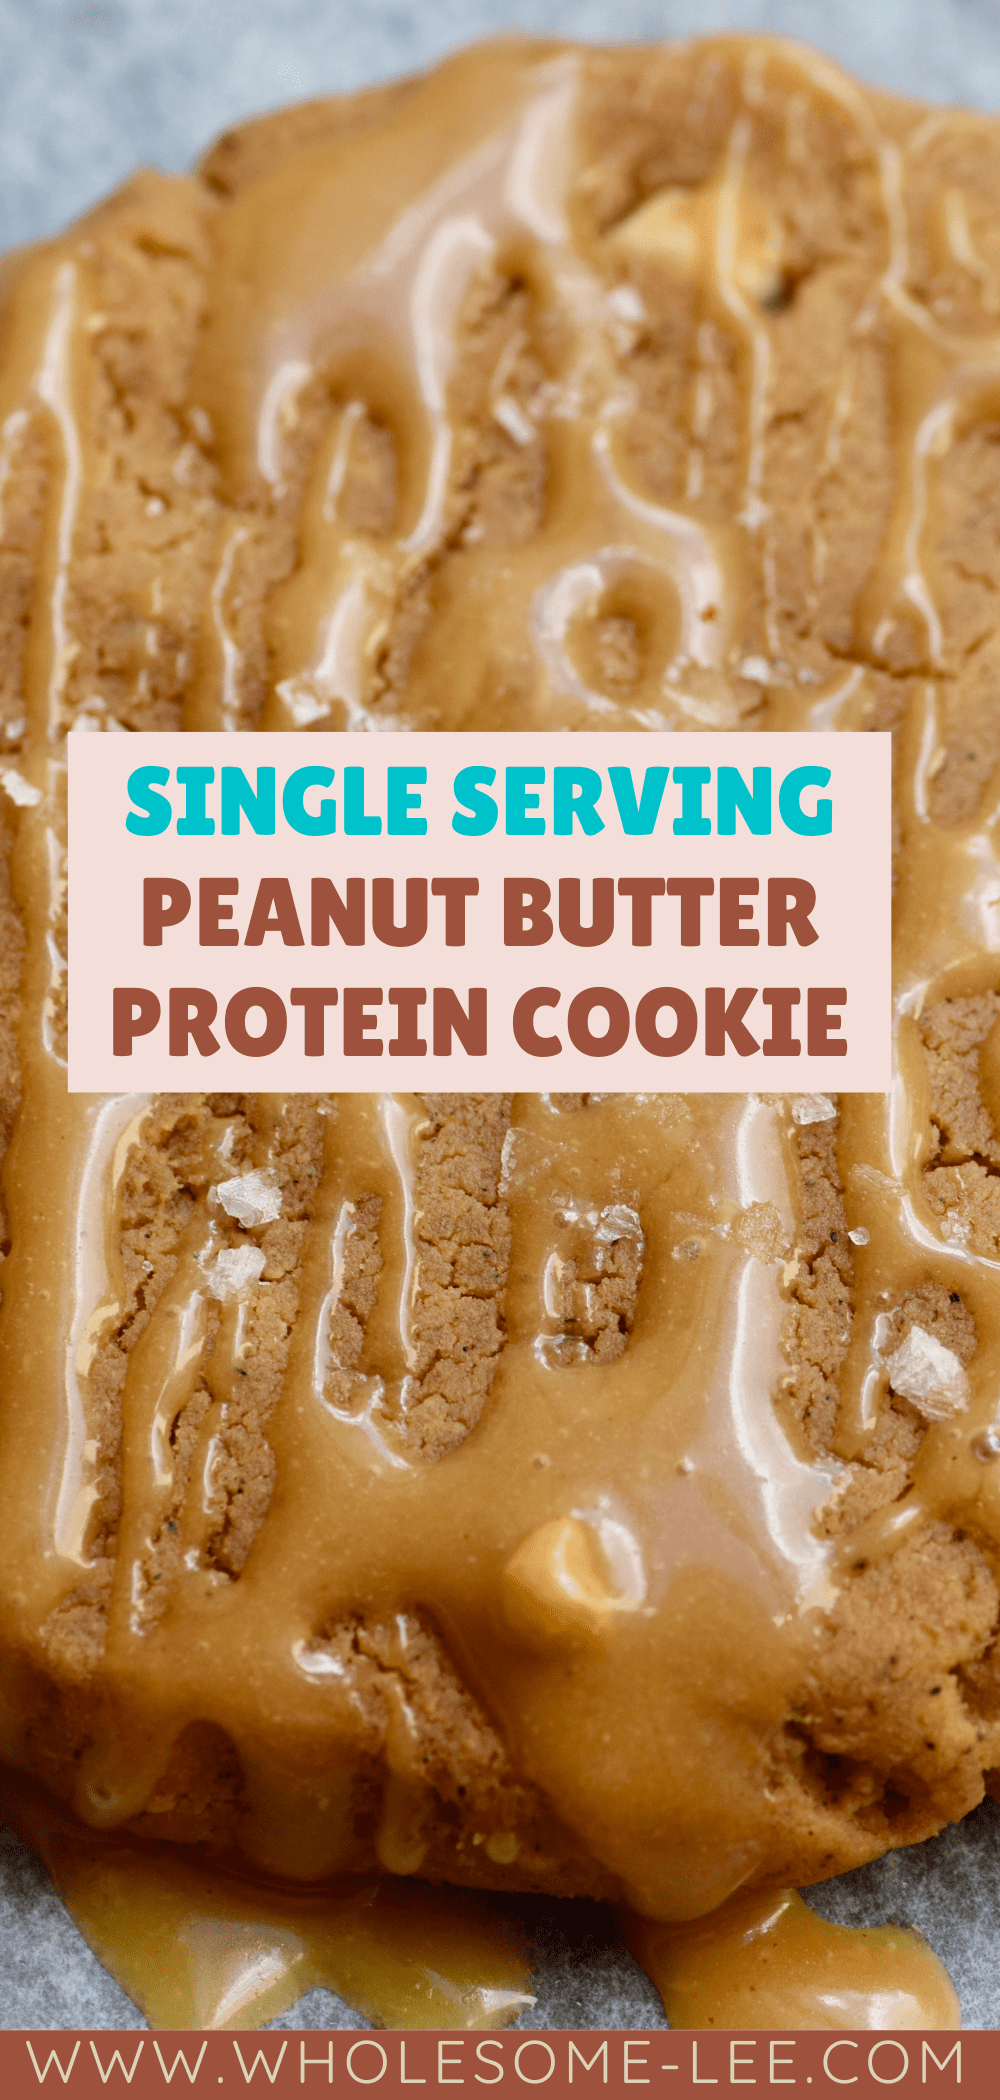 Single serving peanut butter protein cookie